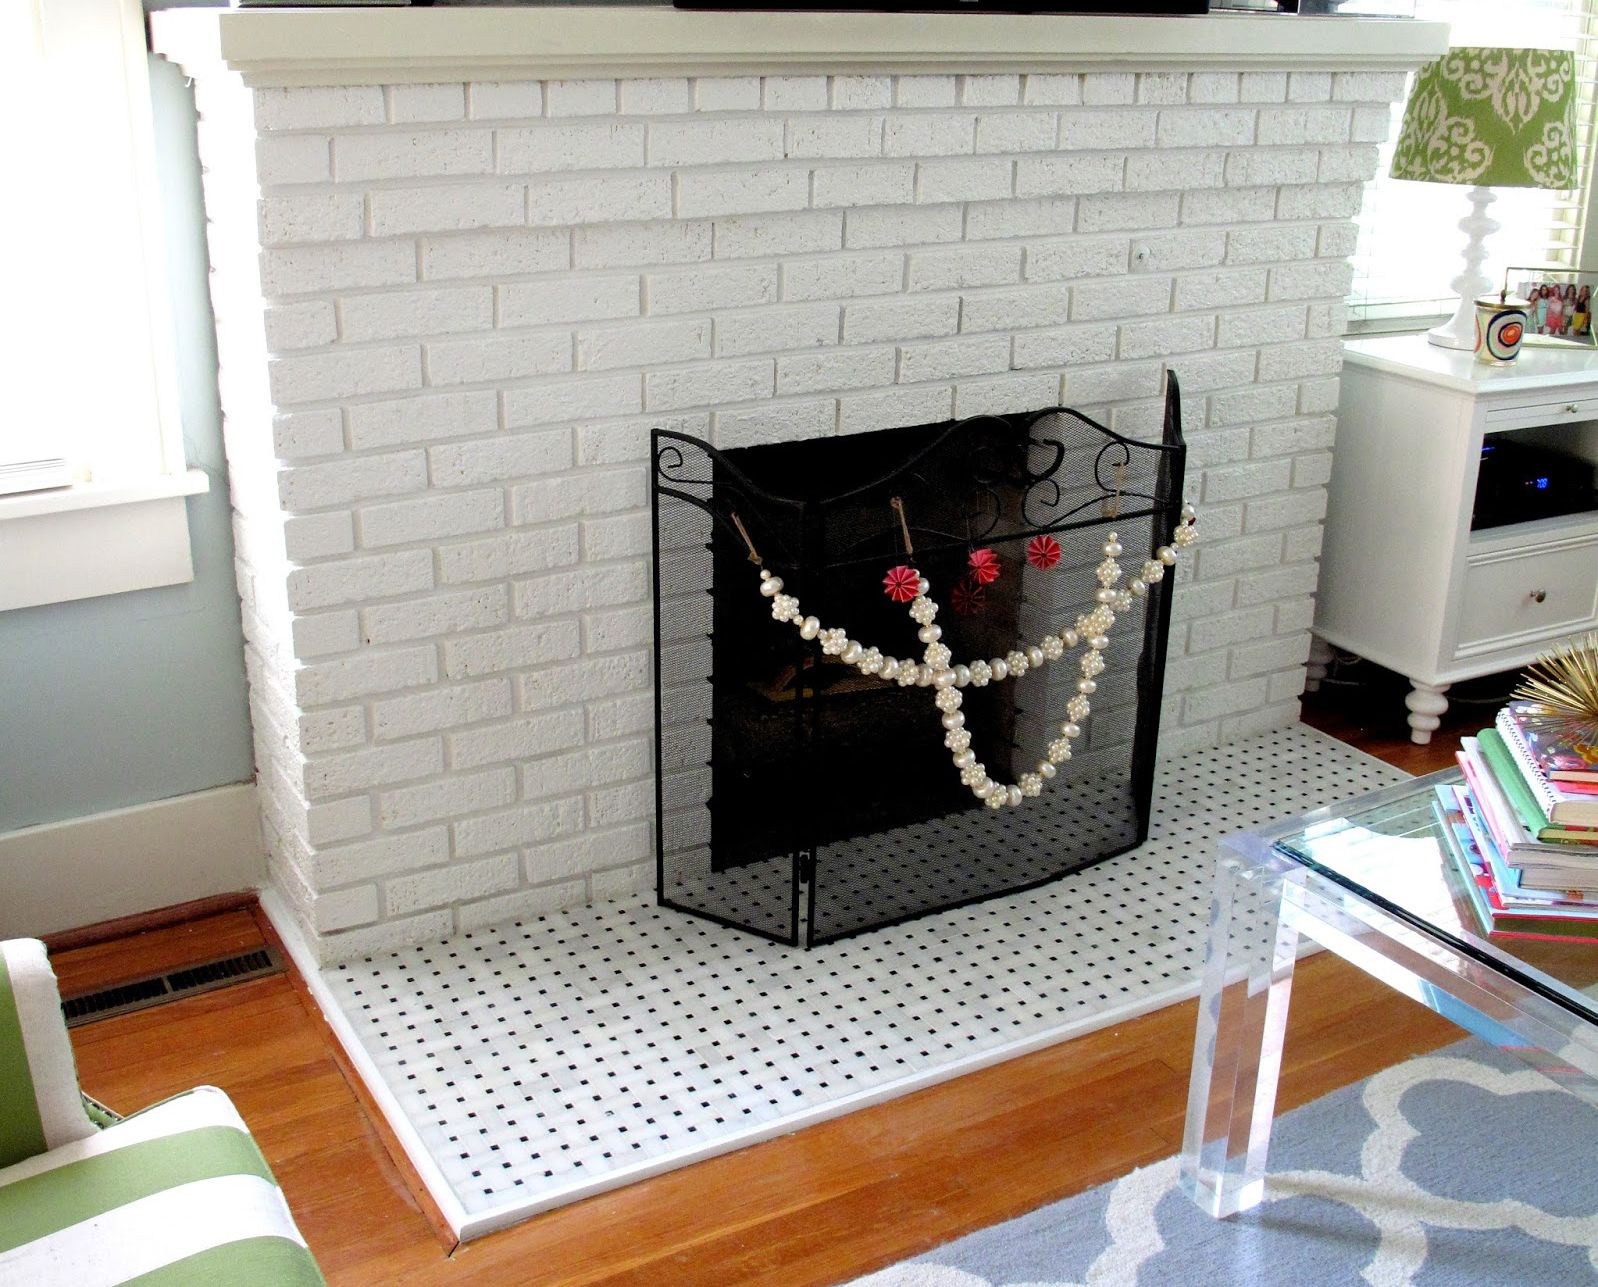 Heat Resistant Tile for Fireplace Elegant 25 Beautifully Tiled Fireplaces